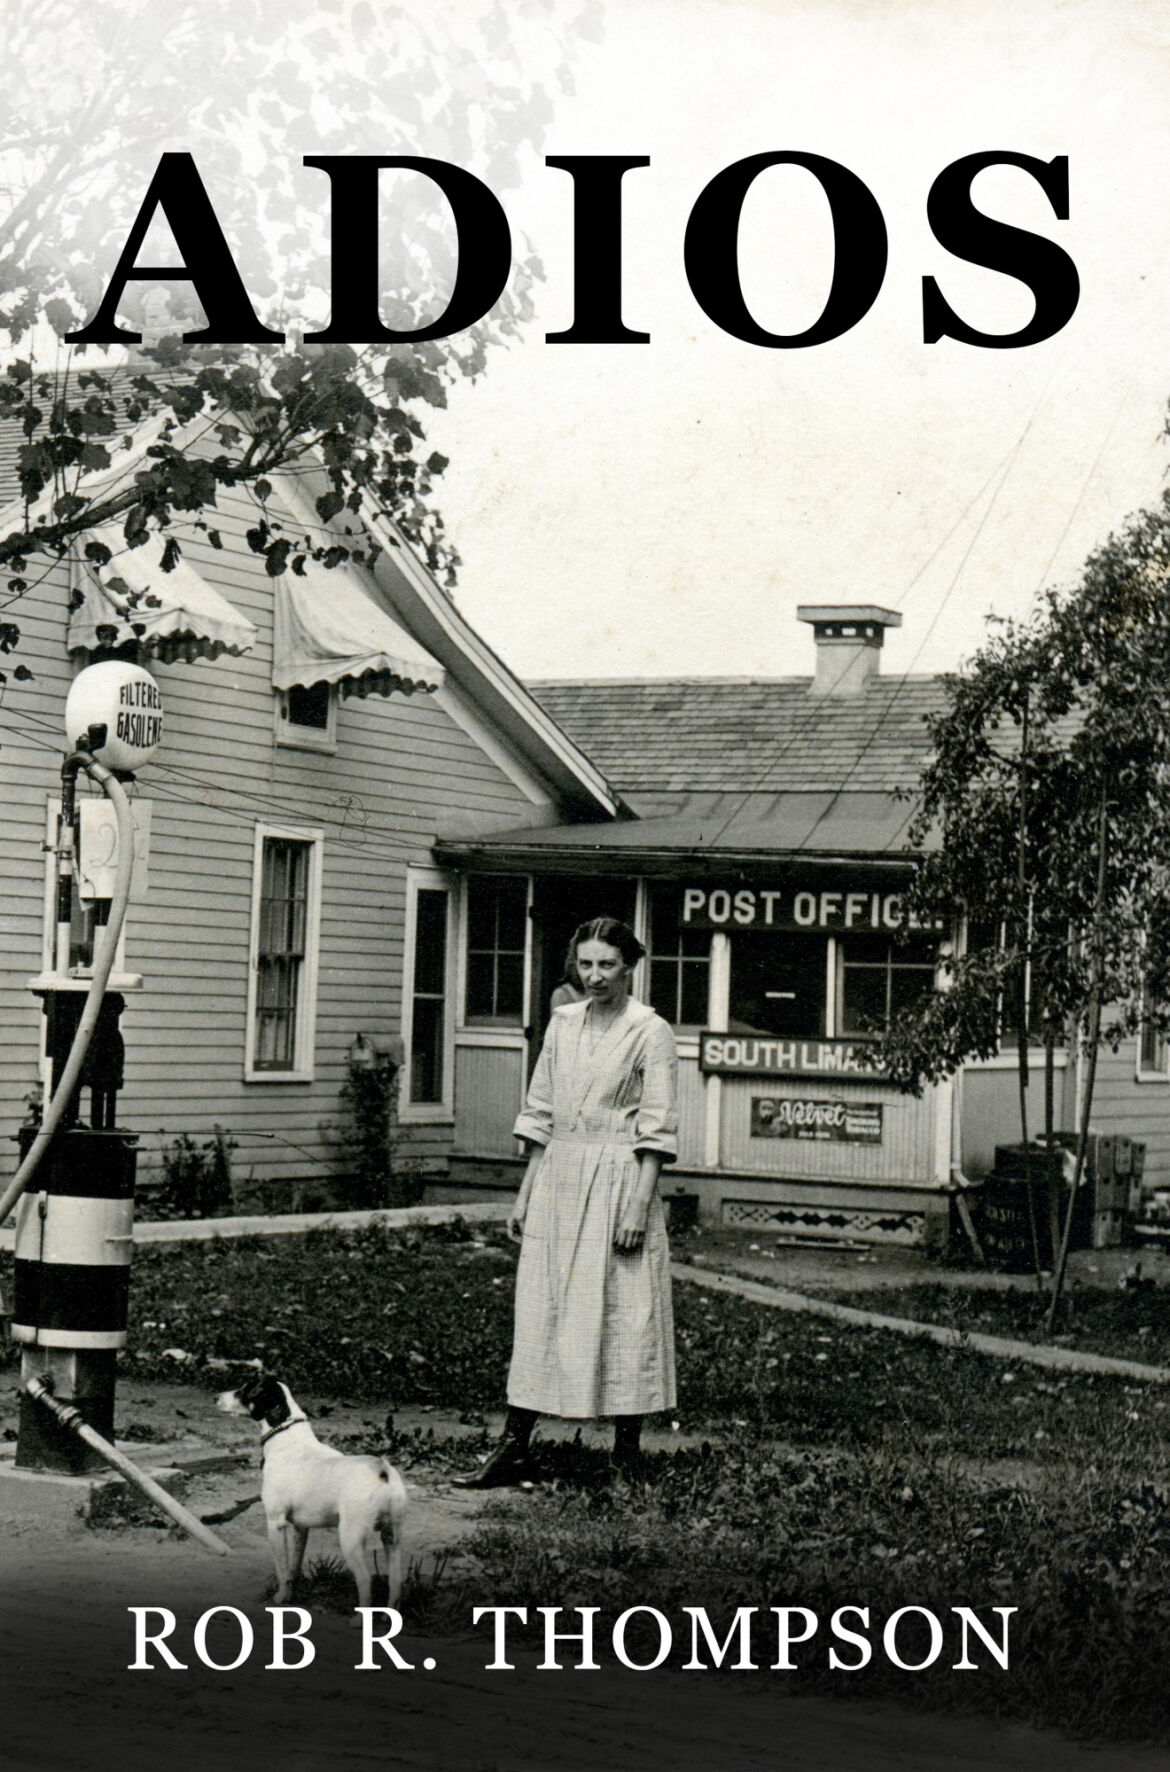 Author explores hometown history 'Adios: History of South Lima' set for July 5 release